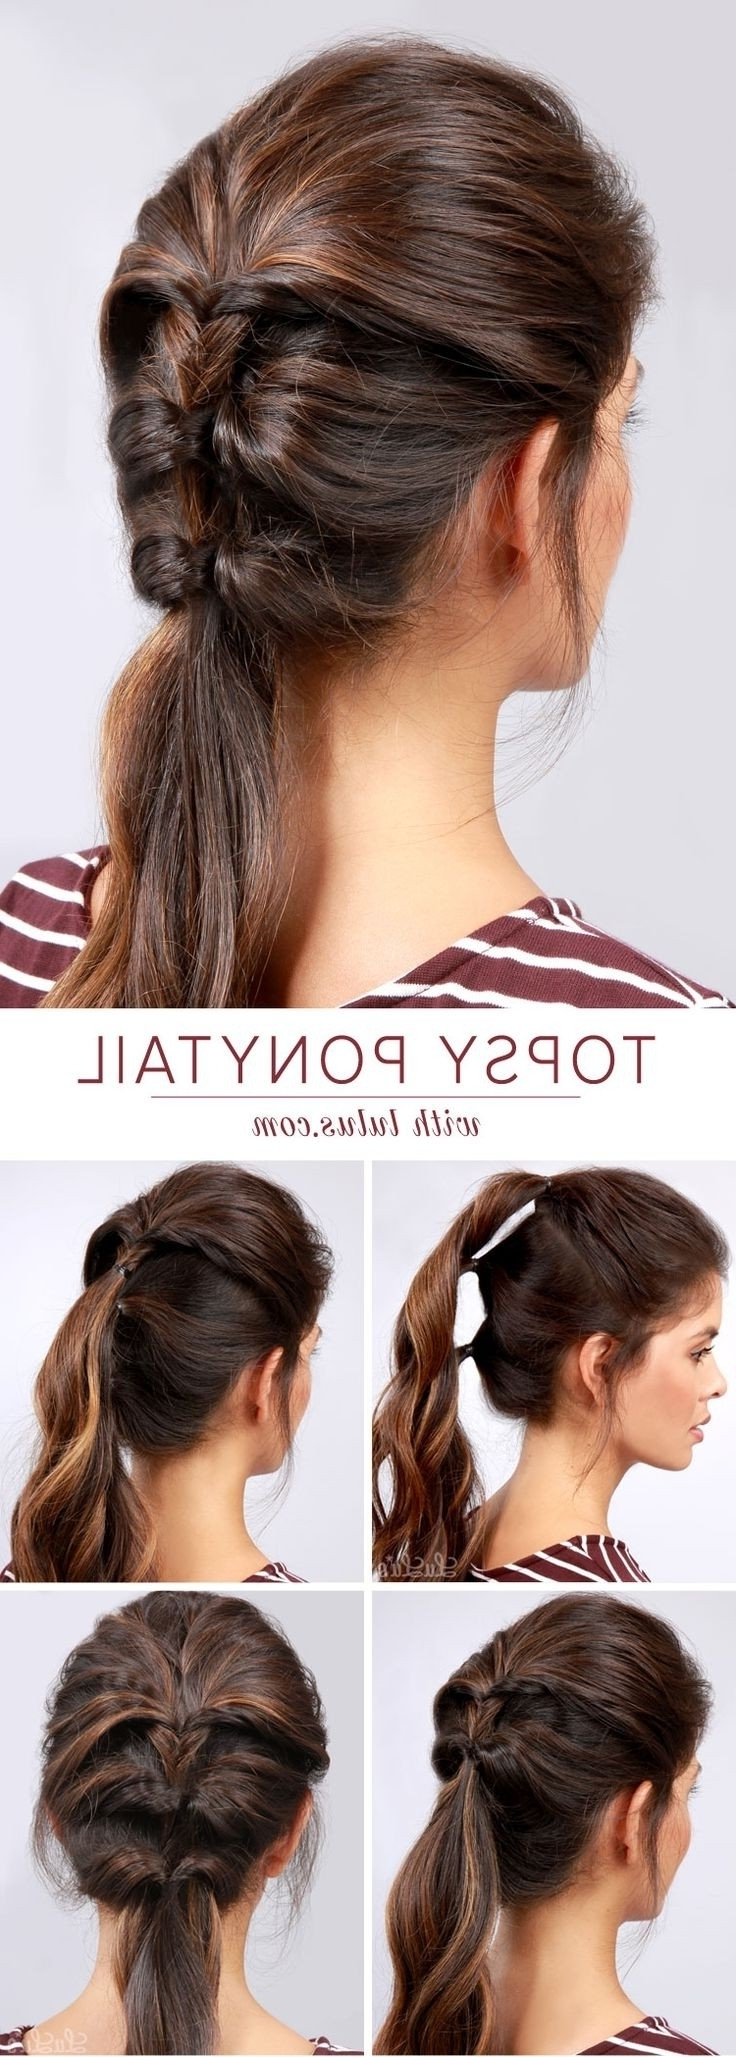 22 Great Ponytail Hairstyles For Girls – Pretty Designs Pertaining To Ponytail Updo Hairstyles (View 5 of 15)